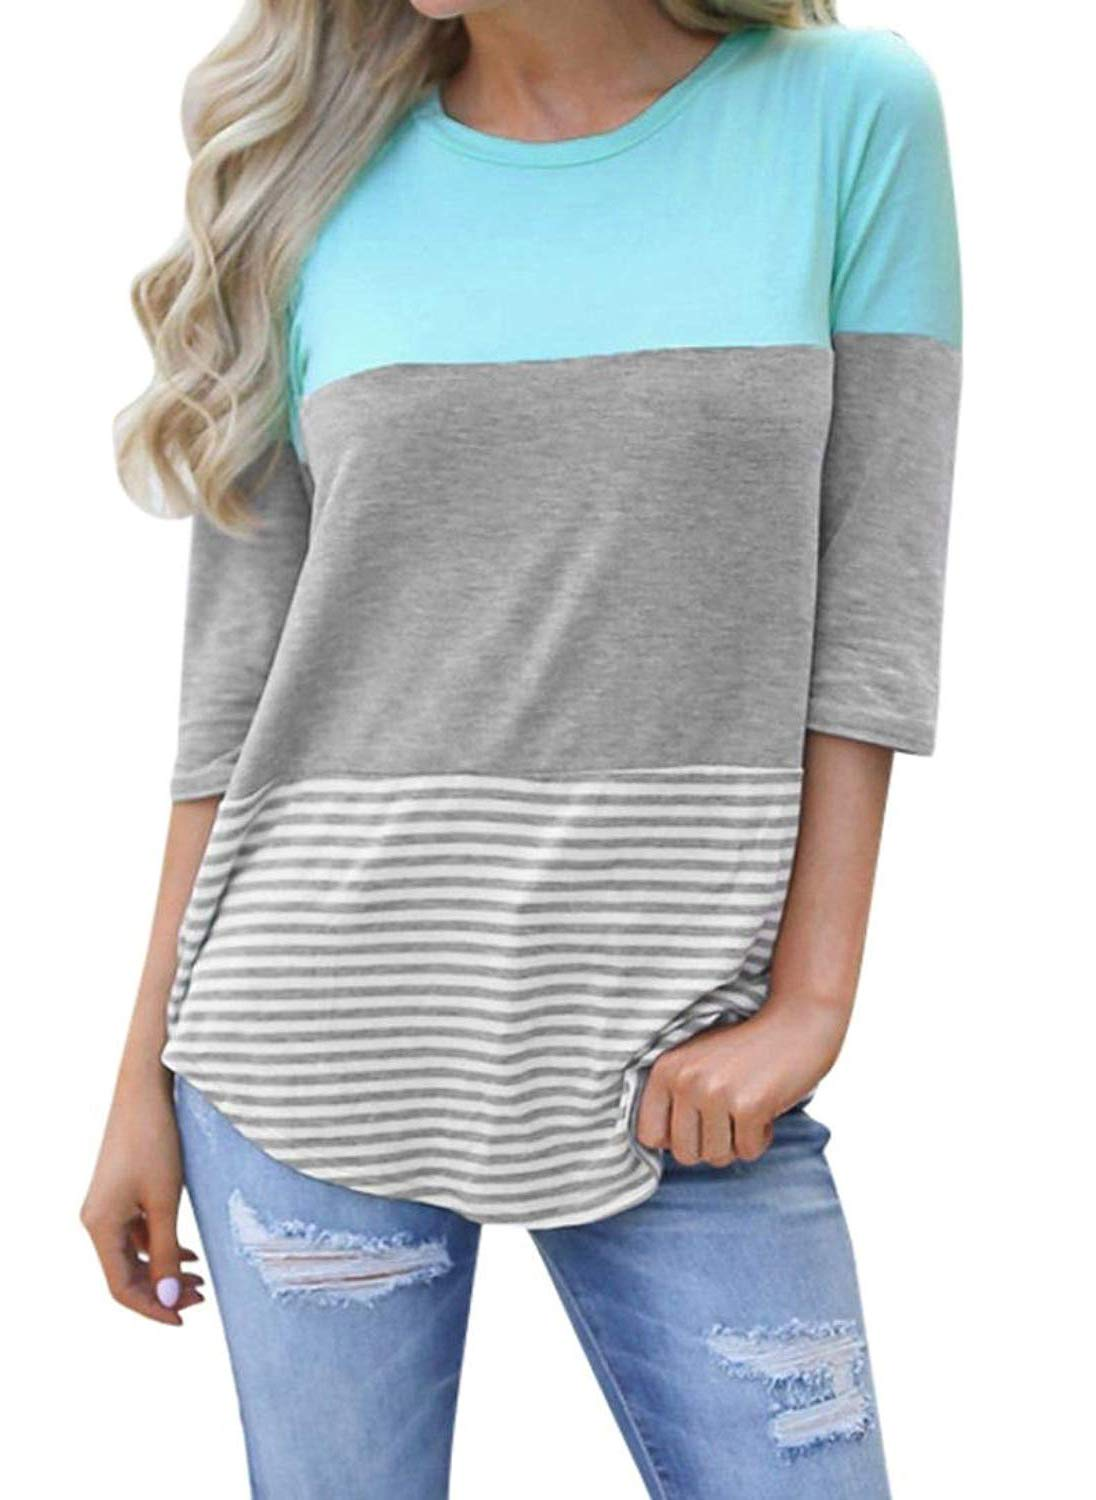 Striped Tops for Women 3/4 Sleeve Casual Loose fit T-Shirt Blouse (Green, Medium)